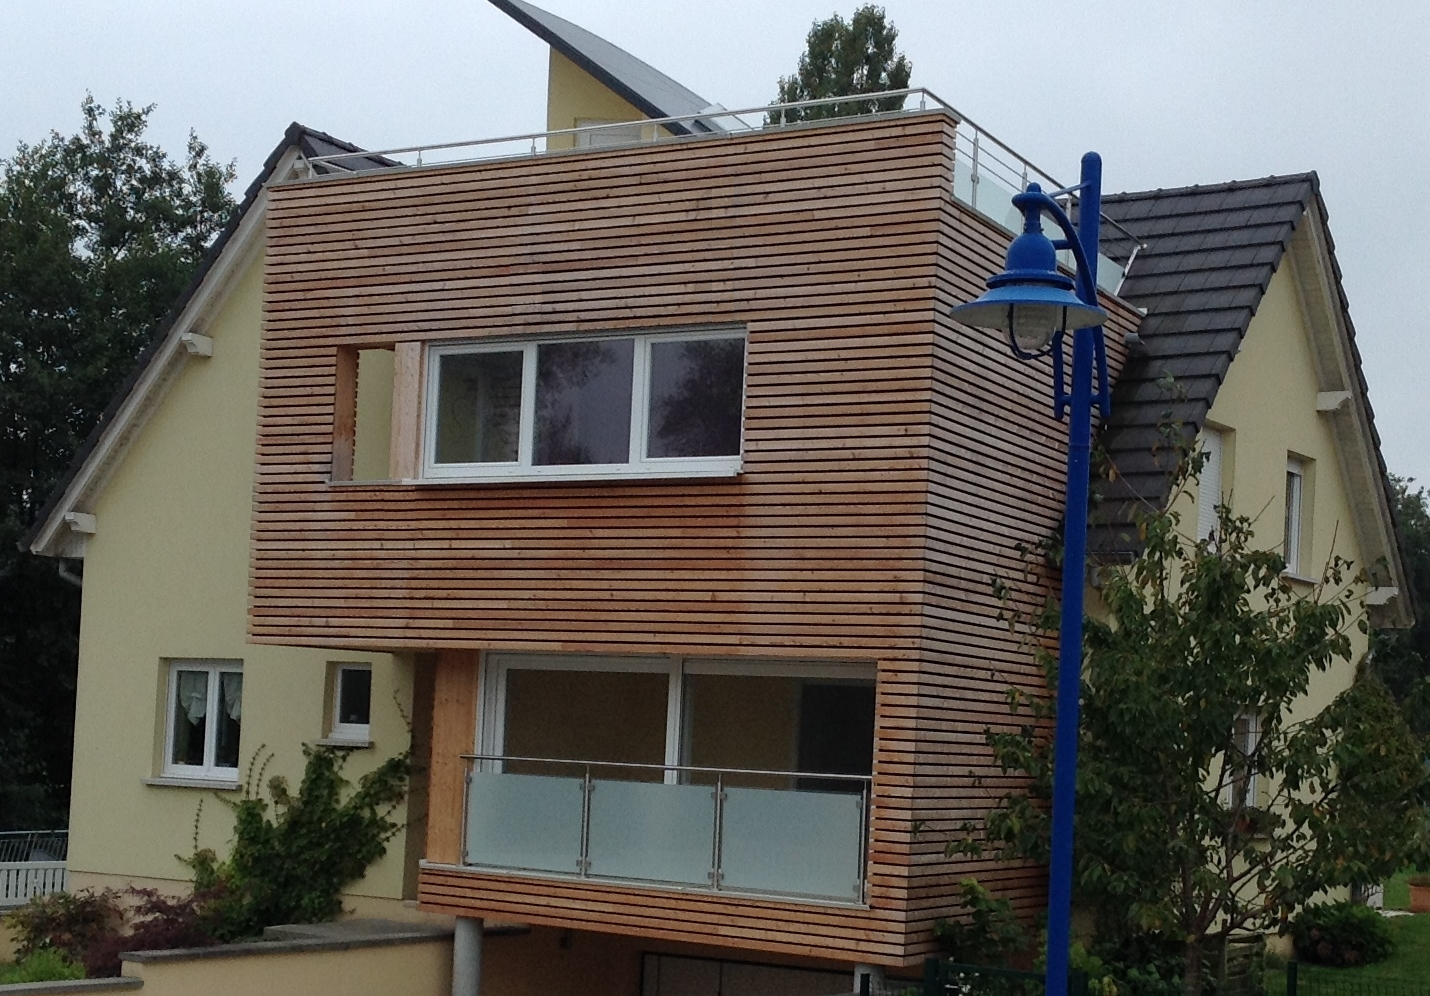 Grande extension sur piloti ABT Construction Bois # Extension En Bois Sur Pilotis